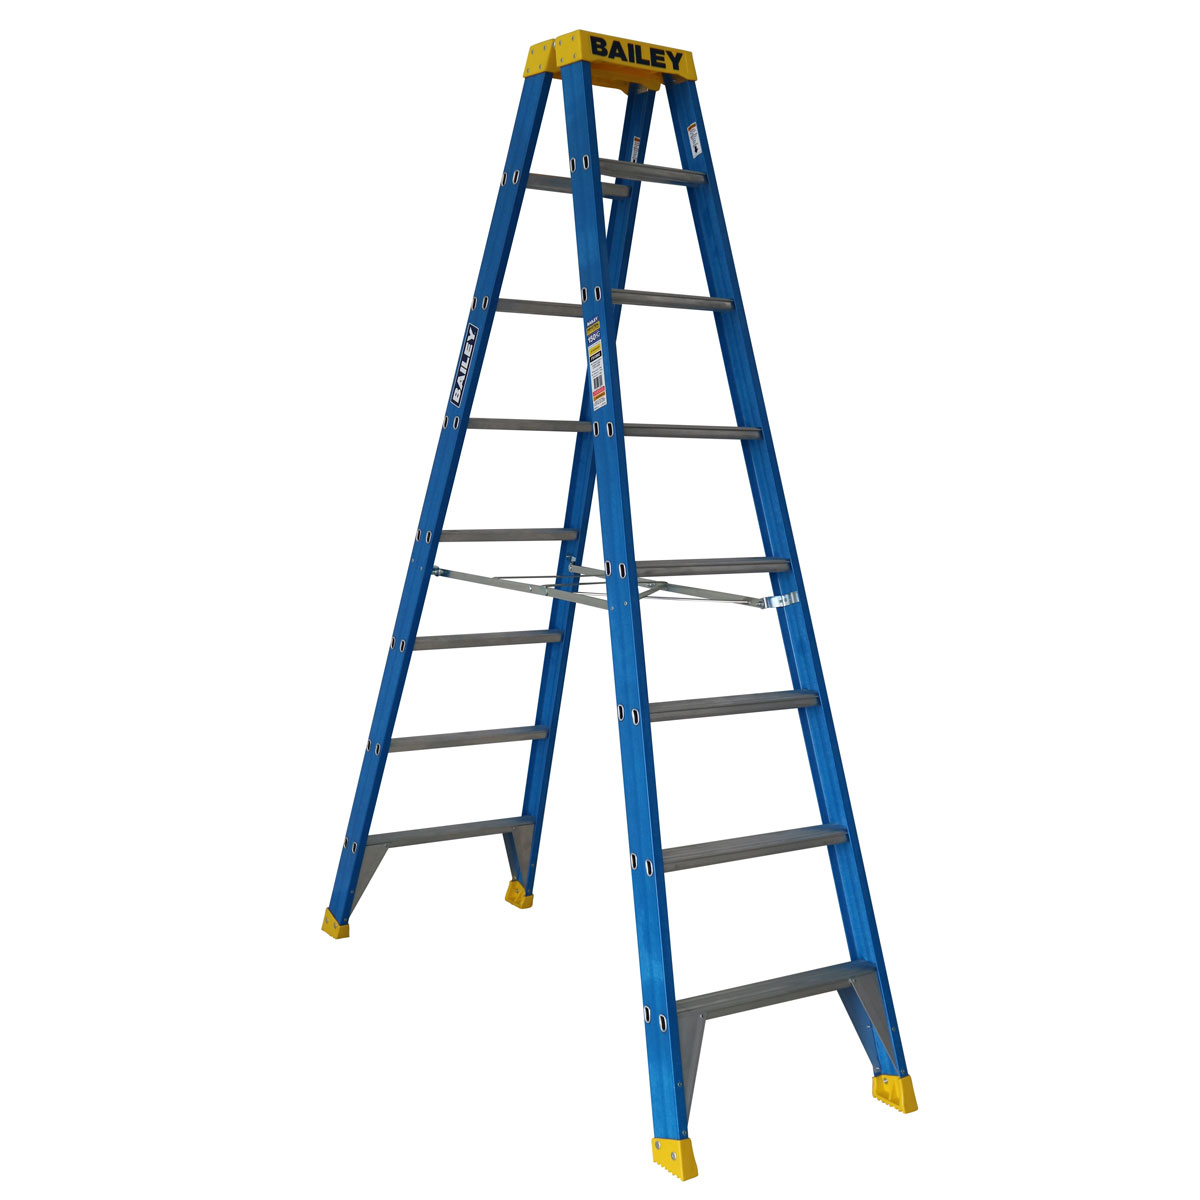 Ladder - Double Sided Fibreglass Bailey Industrial Punchlock 150kg 8-Step 2.4M